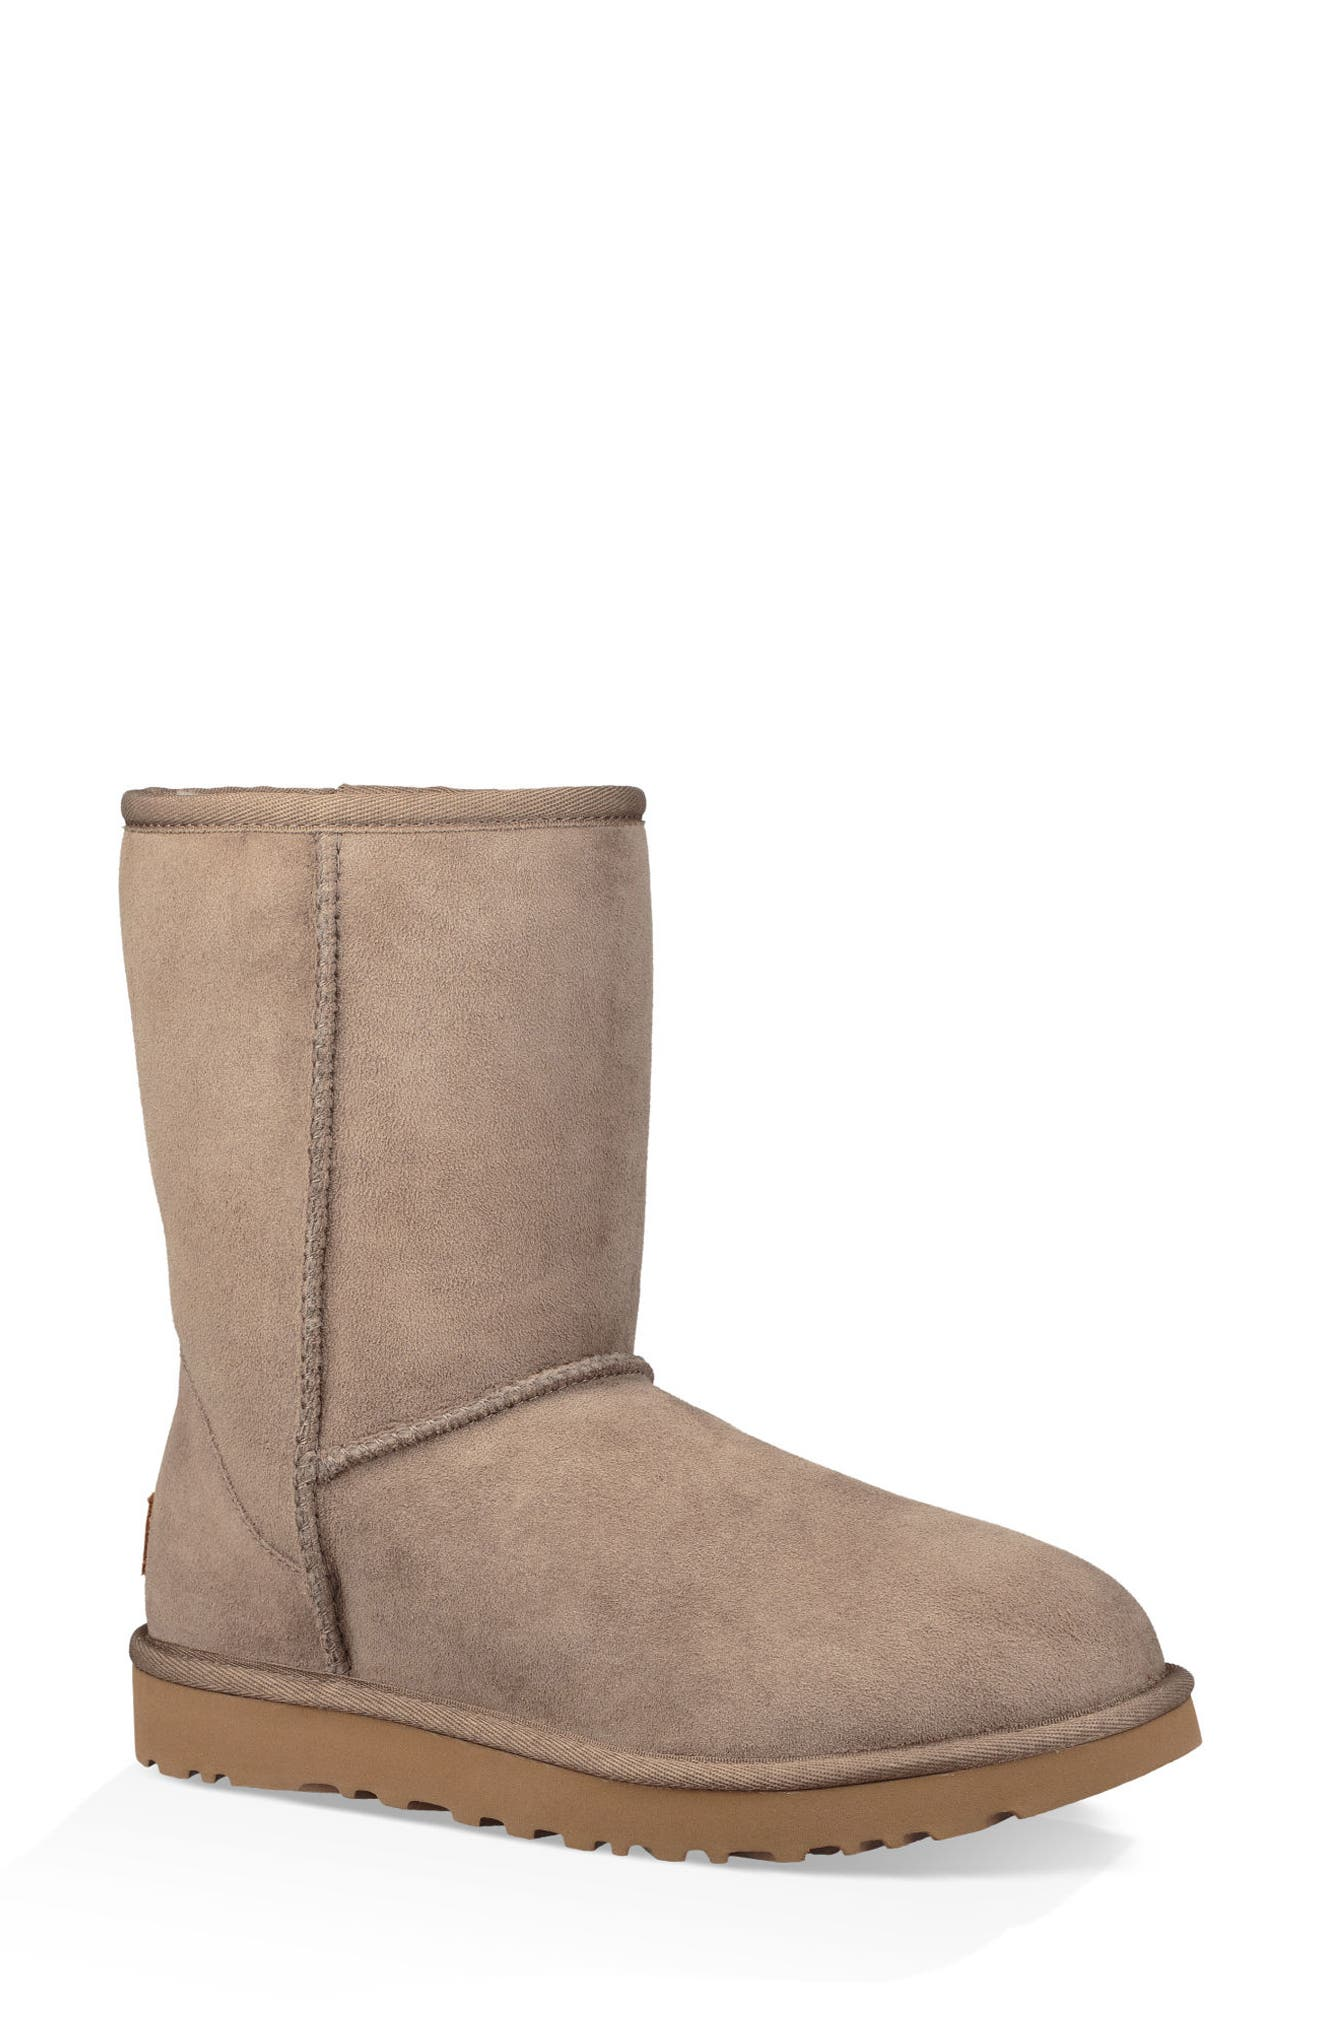 'Classic II' Genuine Shearling Lined Short Boot,                         Main,                         color, BRINDLE SUEDE